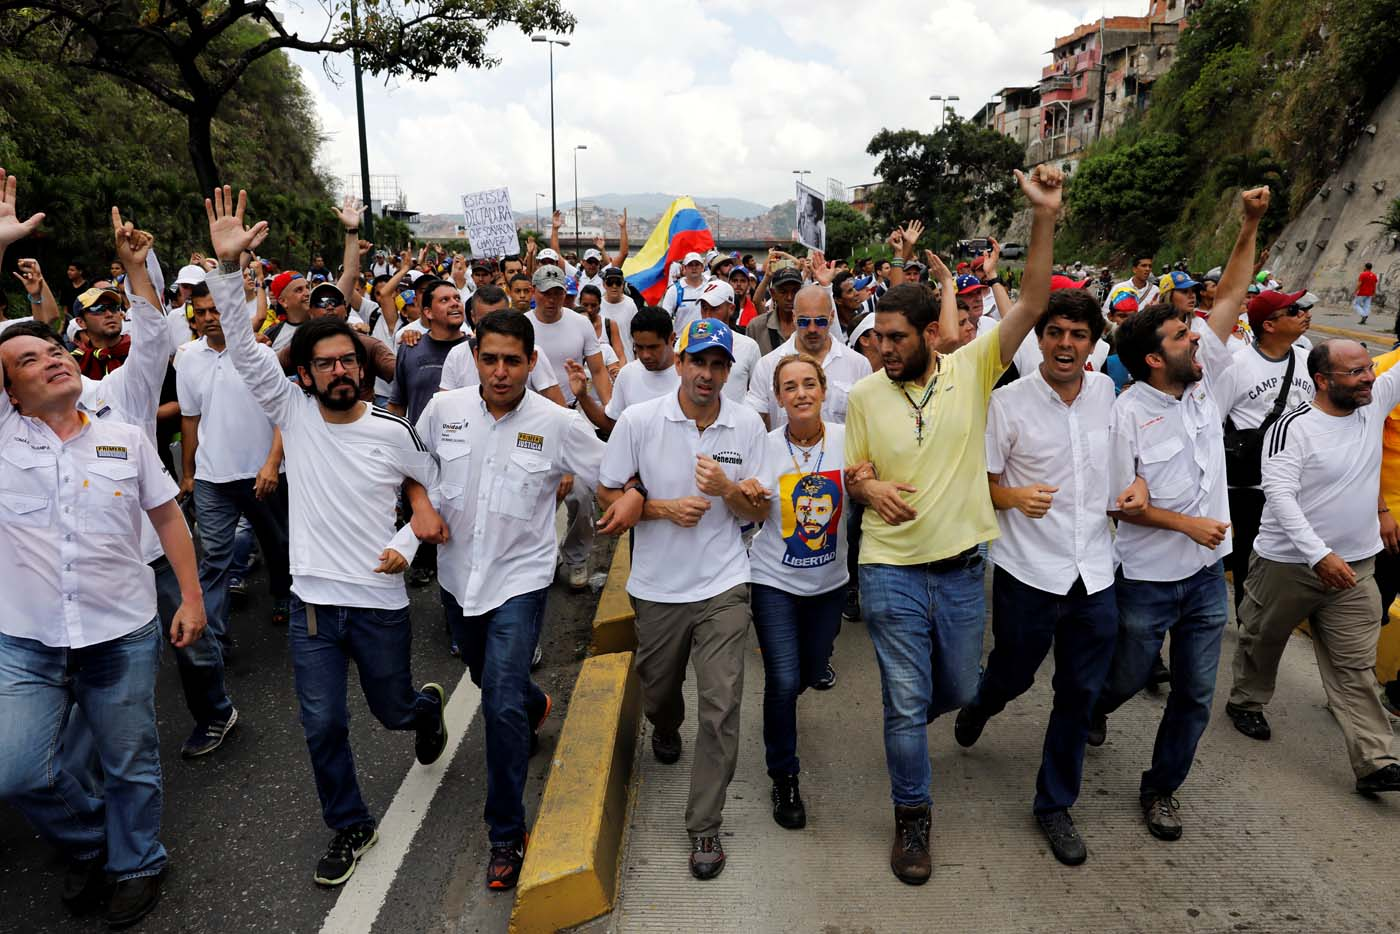 Venezuelan opposition leader and Governor of Miranda state Henrique Capriles (4th L), Lilian Tintori, (5th R), wife of jailed opposition leader Leopoldo Lopez, walk together with lawmakers as they take part in a rally to honour victims of violence during a protest against Venezuela's President Nicolas Maduro's government in Caracas, Venezuela, April 22, 2017. REUTERS/Carlos Garcia Rawlins